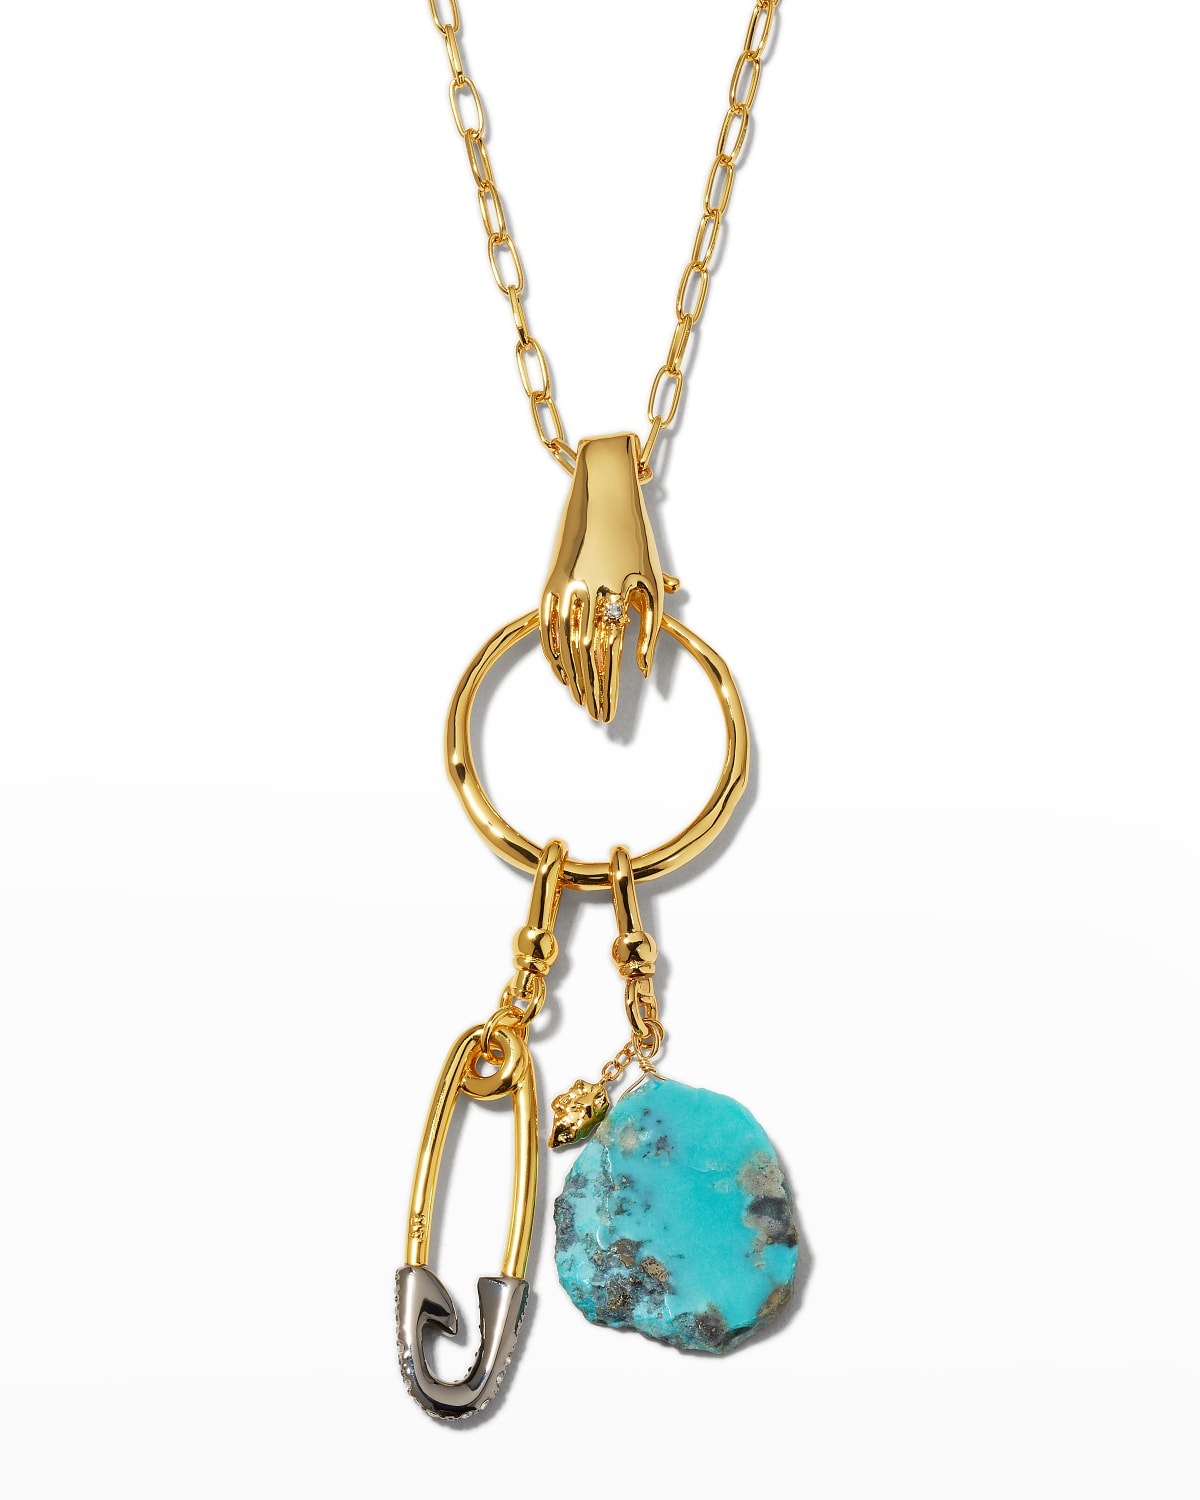 Hand Chain Turquoise and Safety Pin Necklace